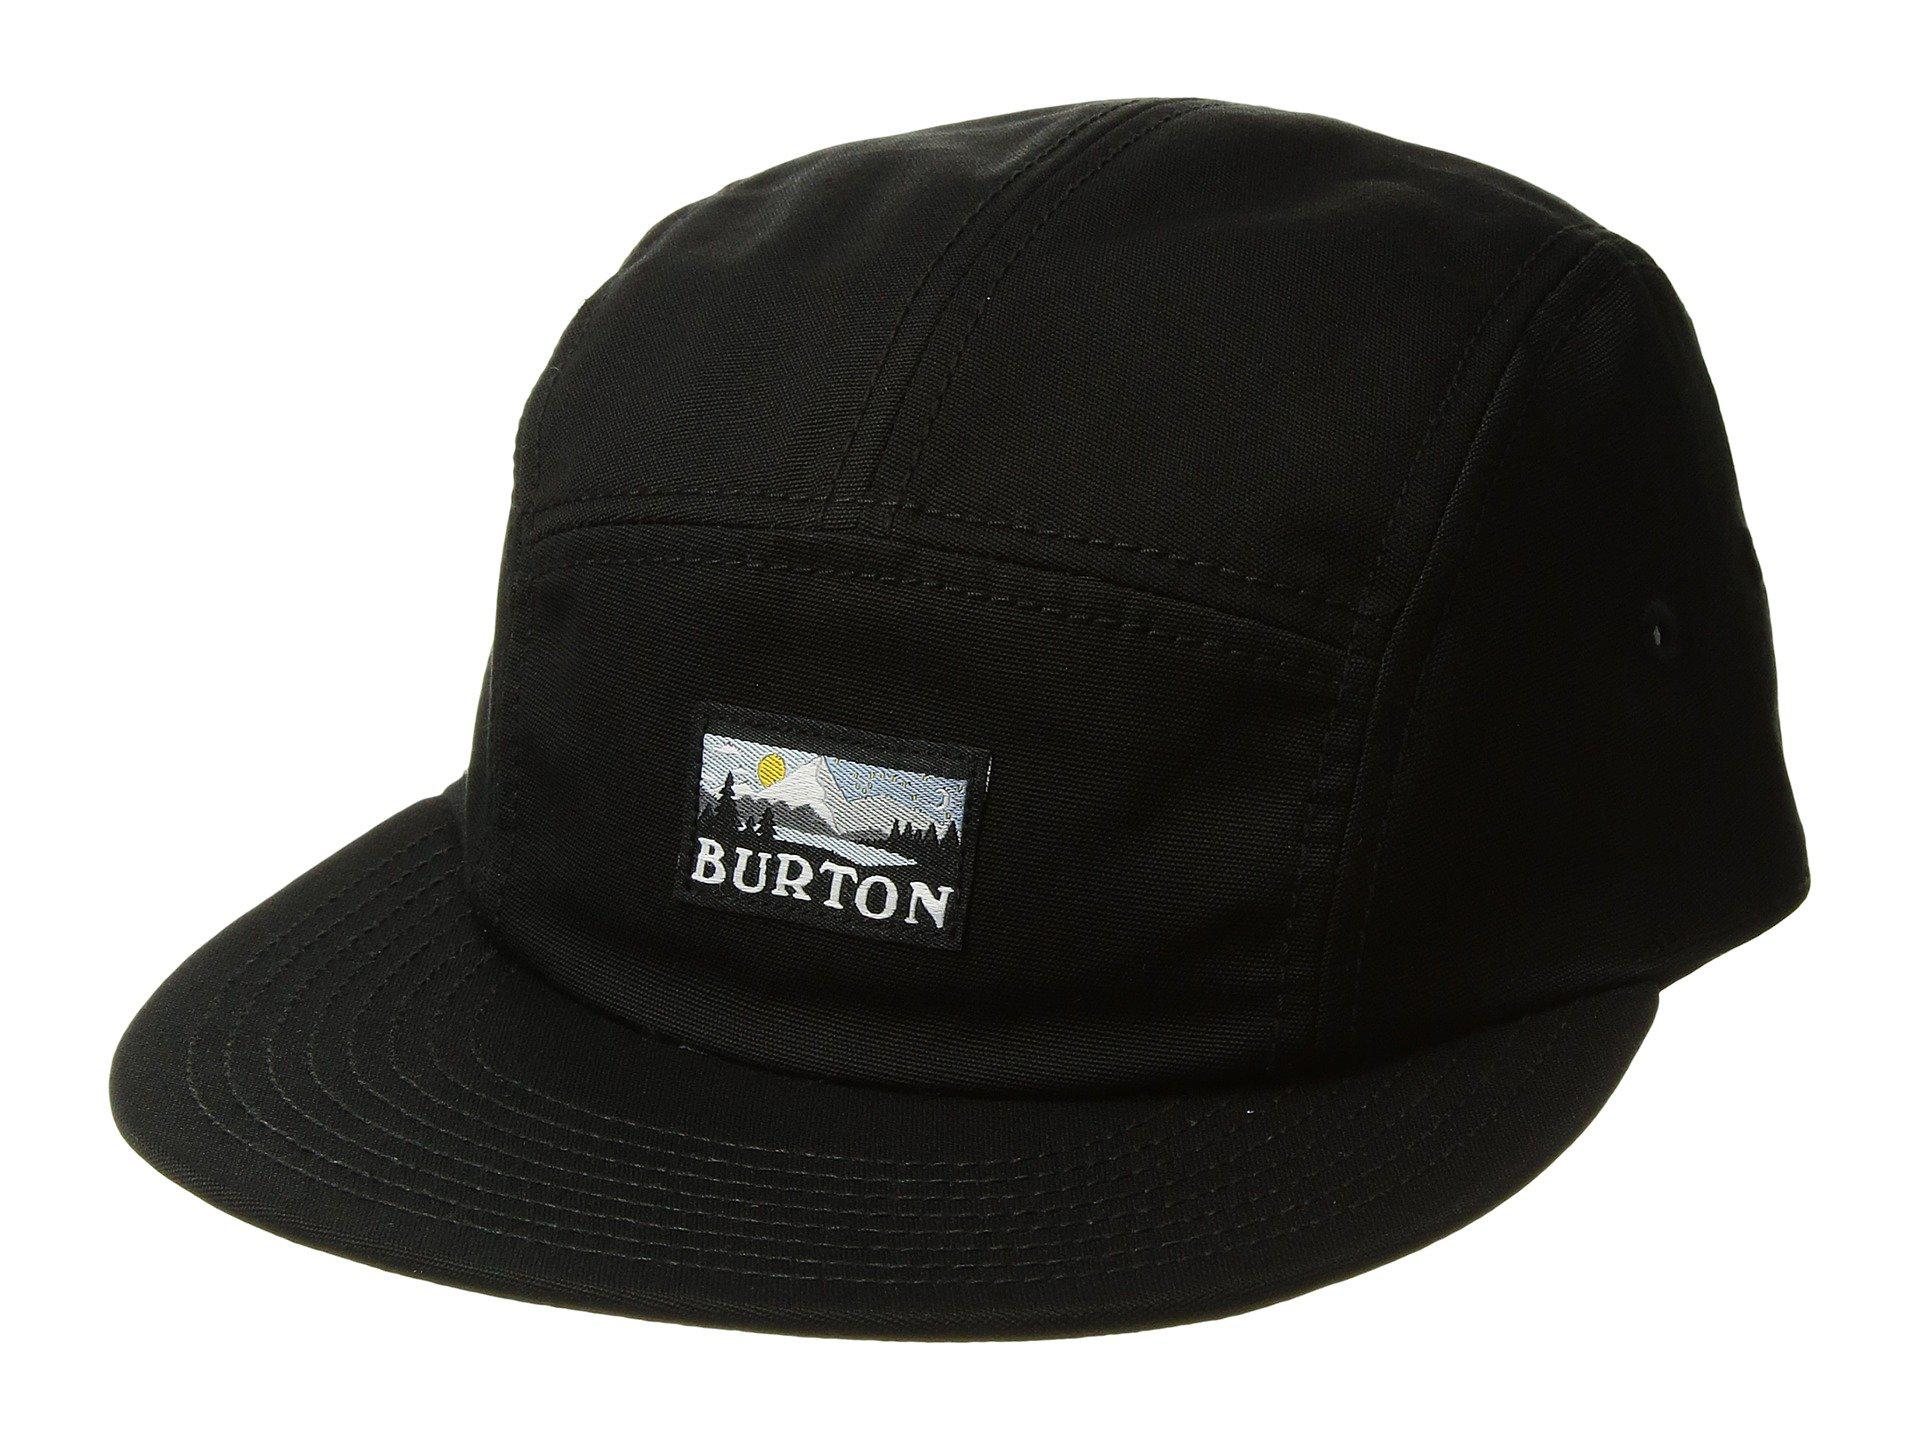 11c58c229 Burton Cordova 5 Panel Hat in Black for Men - Lyst